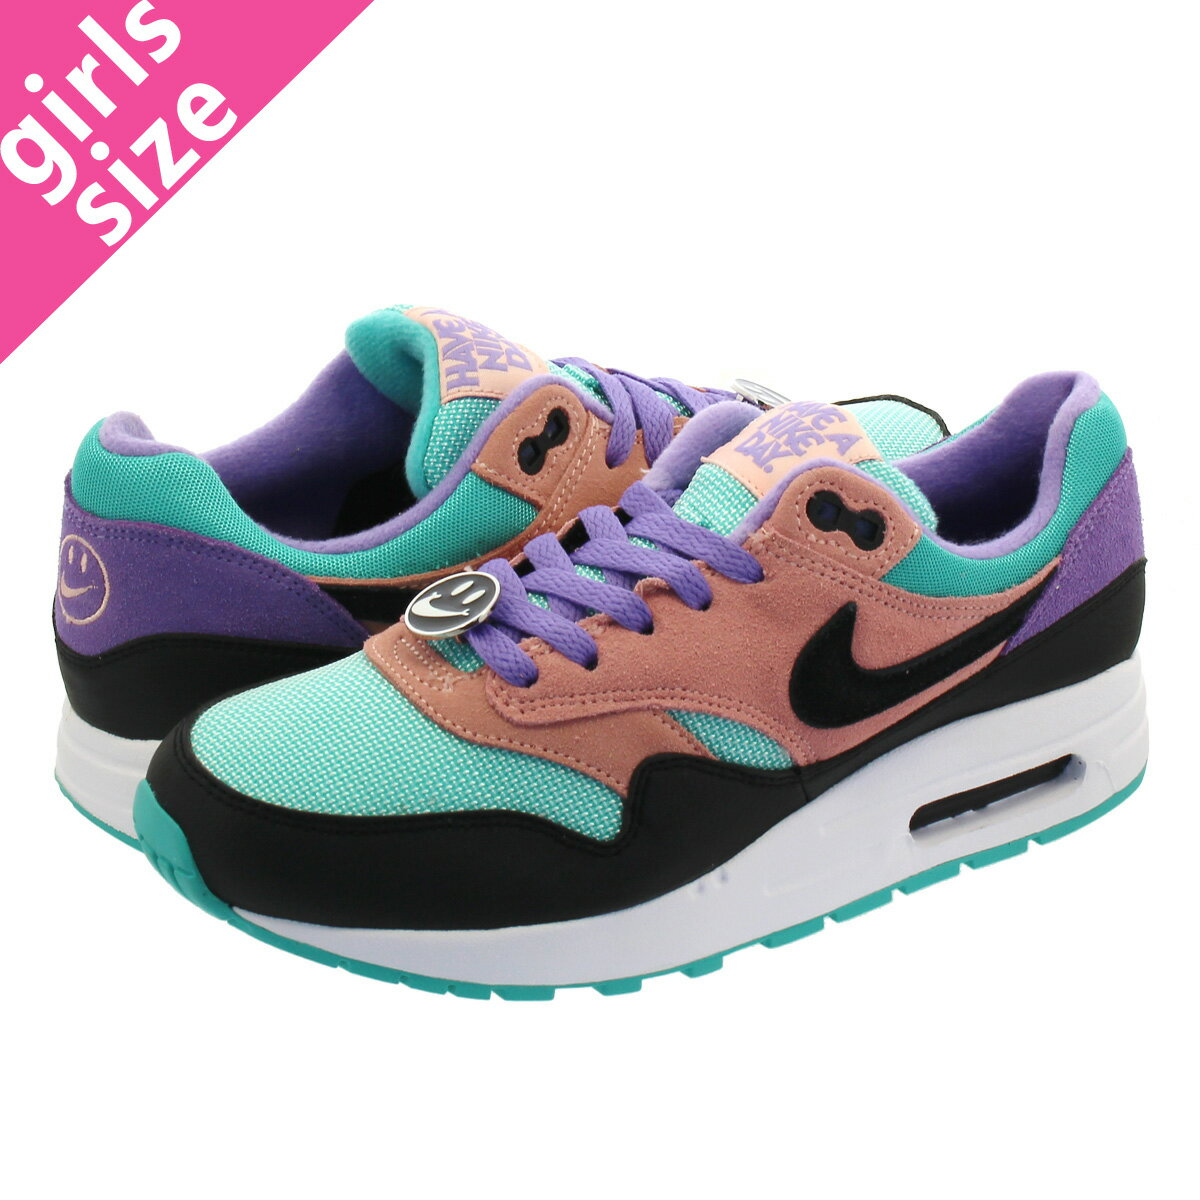 NIKE AIR MAX 1 NK DAY GS 【HAVE A NIKE DAY】 ナイキ エア マックス 1 NK DAY GS BLACK/WHITE/SPACE PURPLE at8131-001